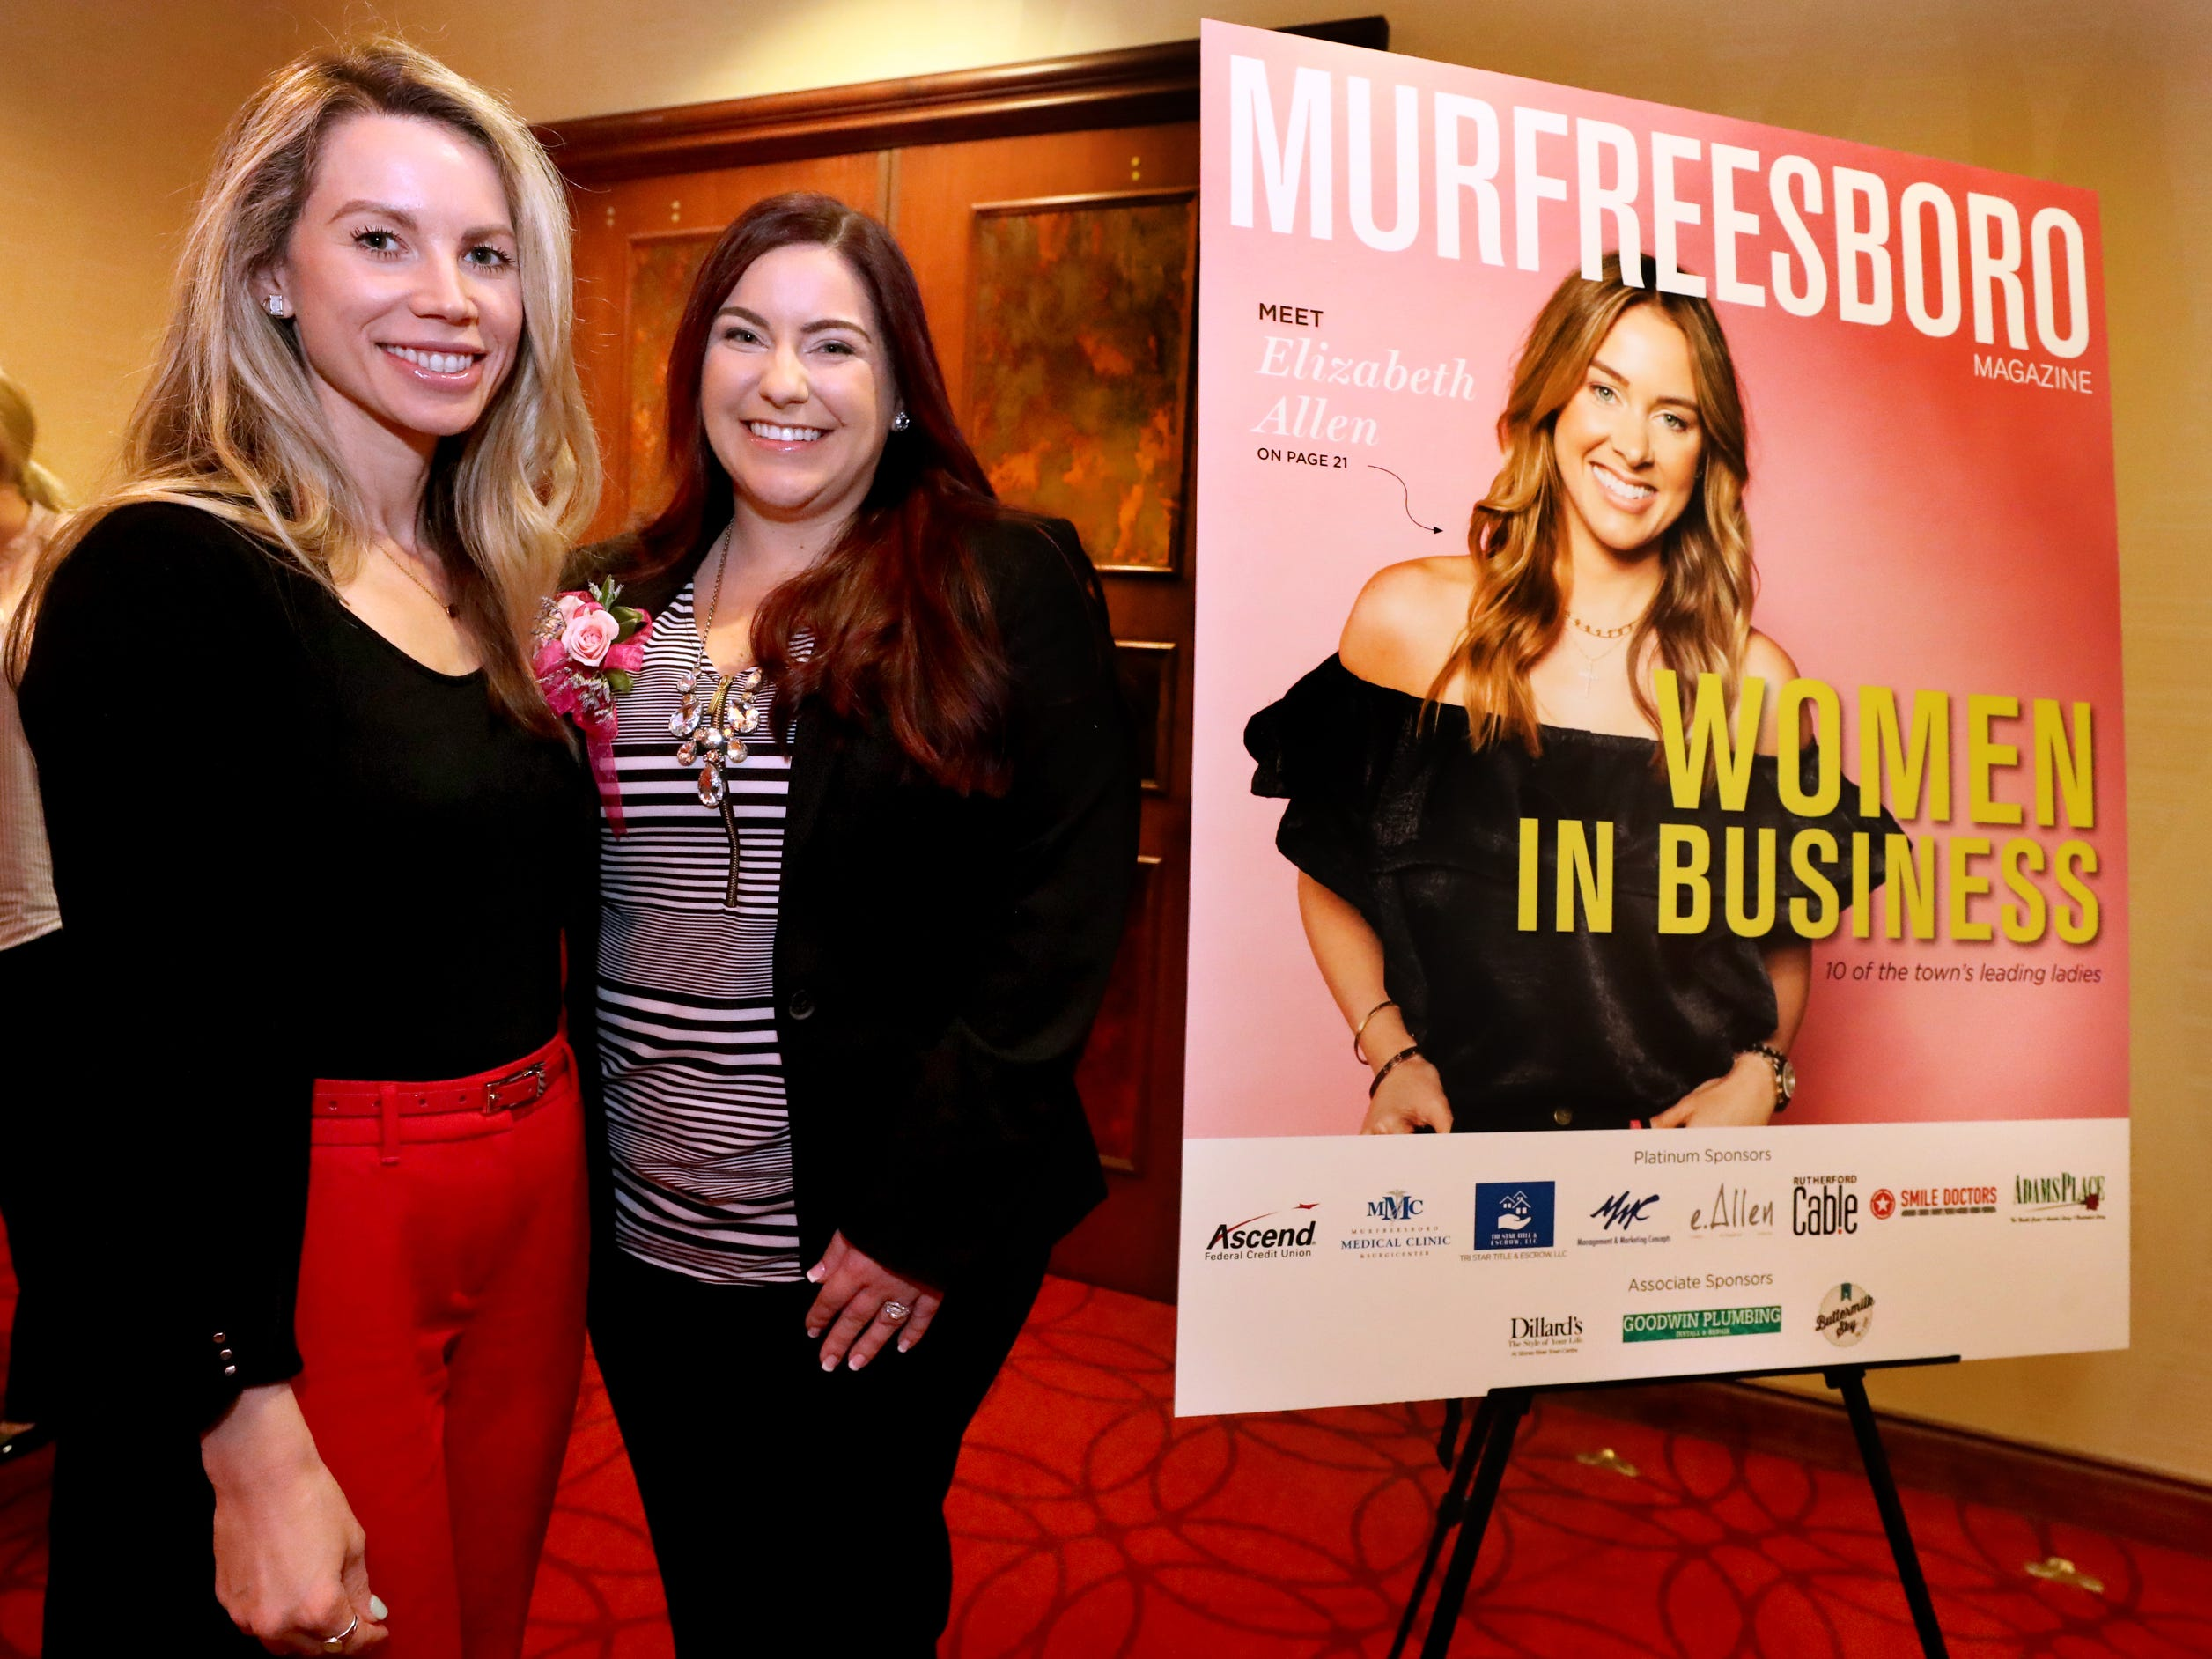 Carly Smith, left, and Becca Goodwin, right, at Murfreesboro Magazine's 2019 Women in Business Luncheon on Tuesday, March 12, 2019, at the Embassy Suites Murfreesboro.